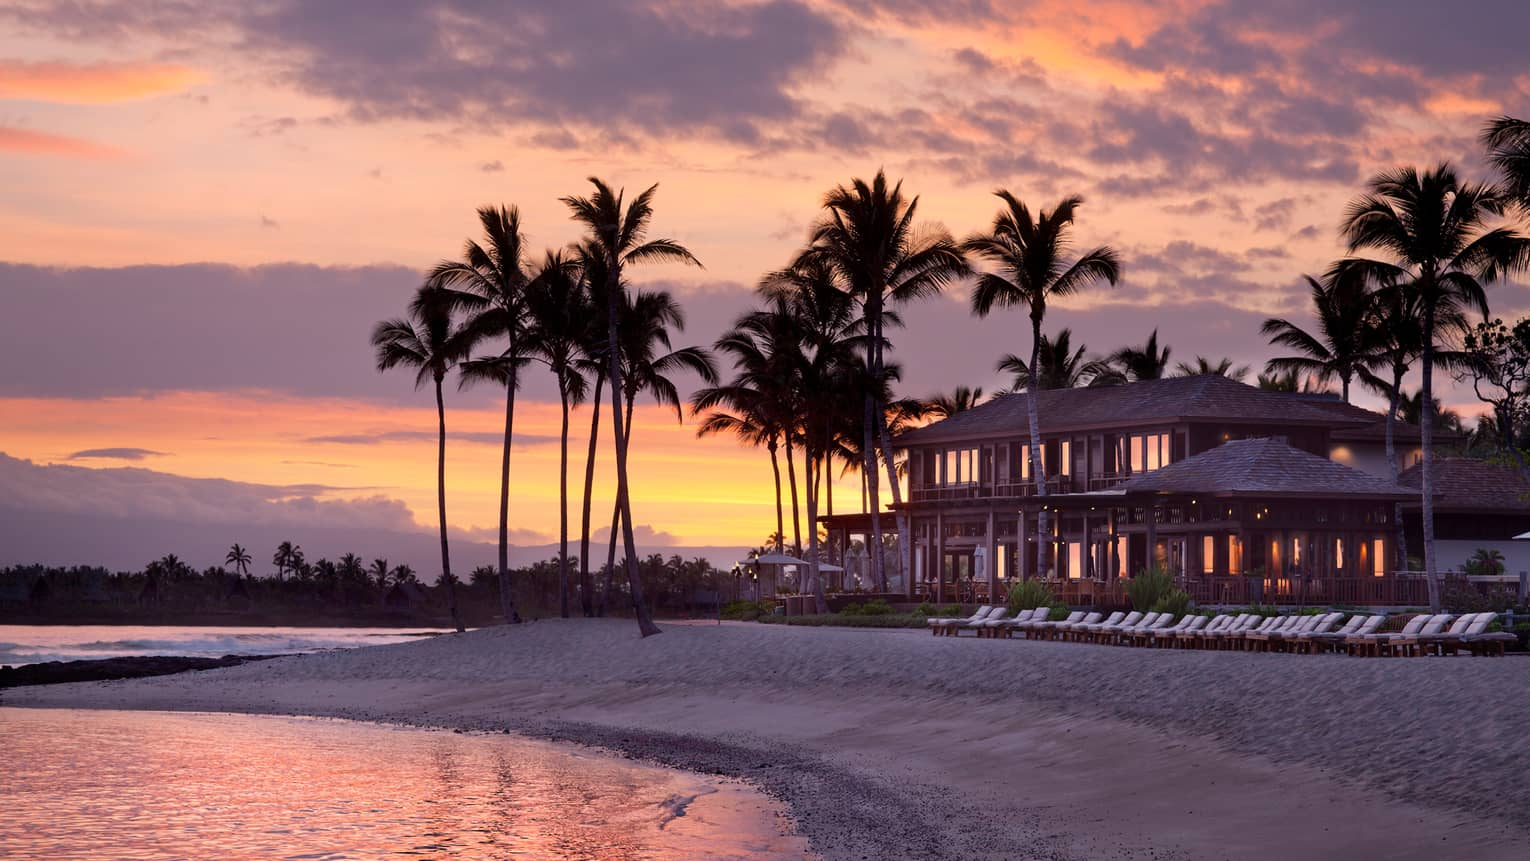 Silhouettes of Four Seasons Resort Hualalai building, tall palm trees on beach at sunset